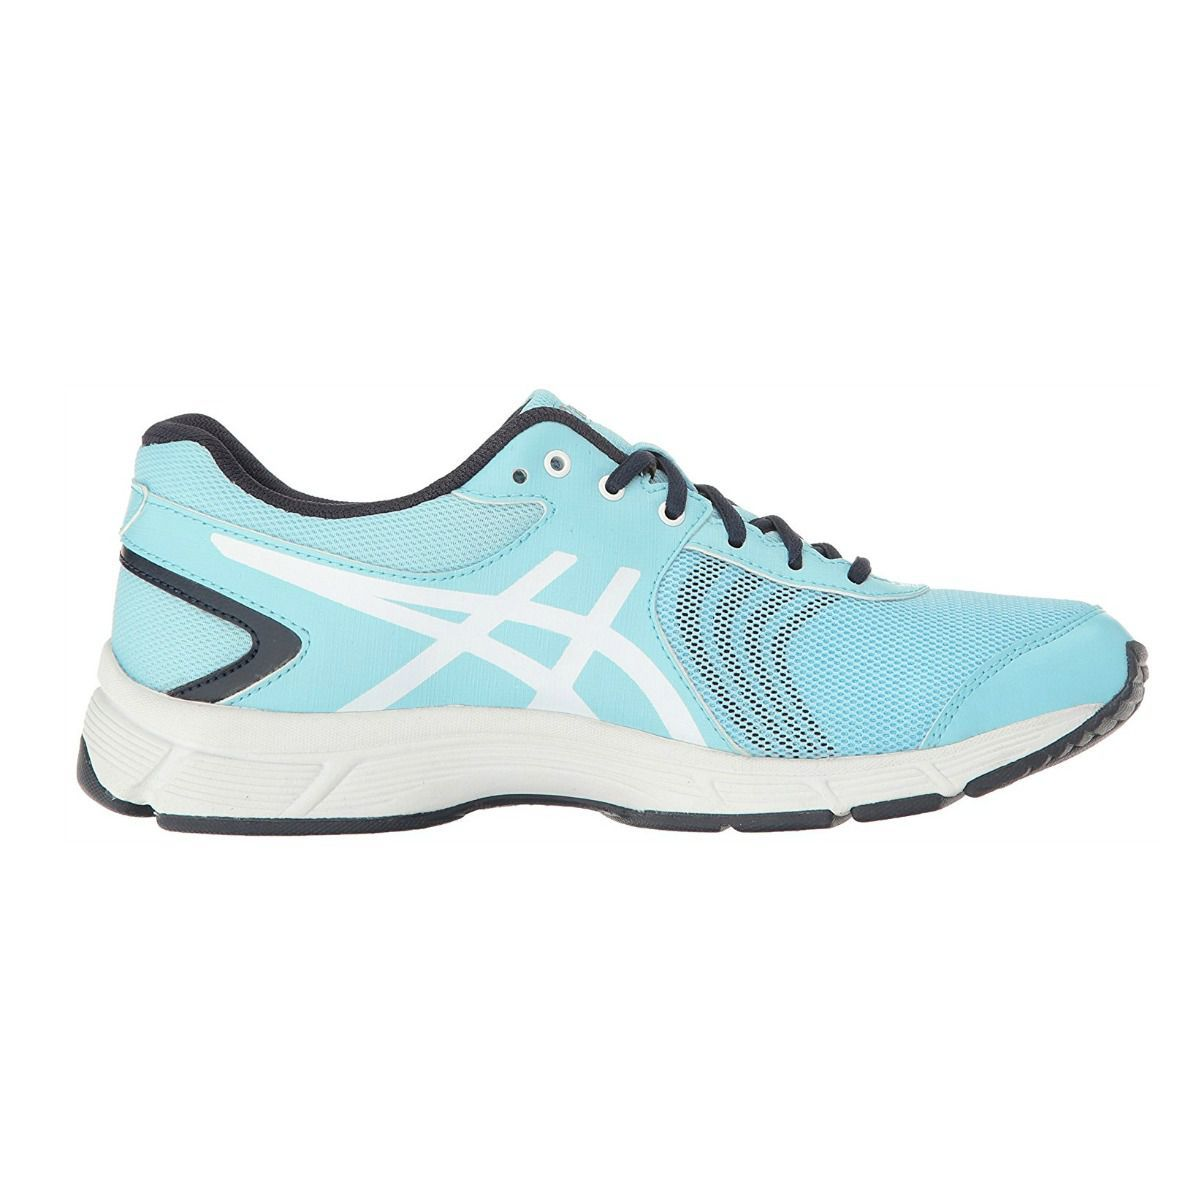 12 Best Walking Shoes for Women in 2018 - Most Comfortable Walking Shoes